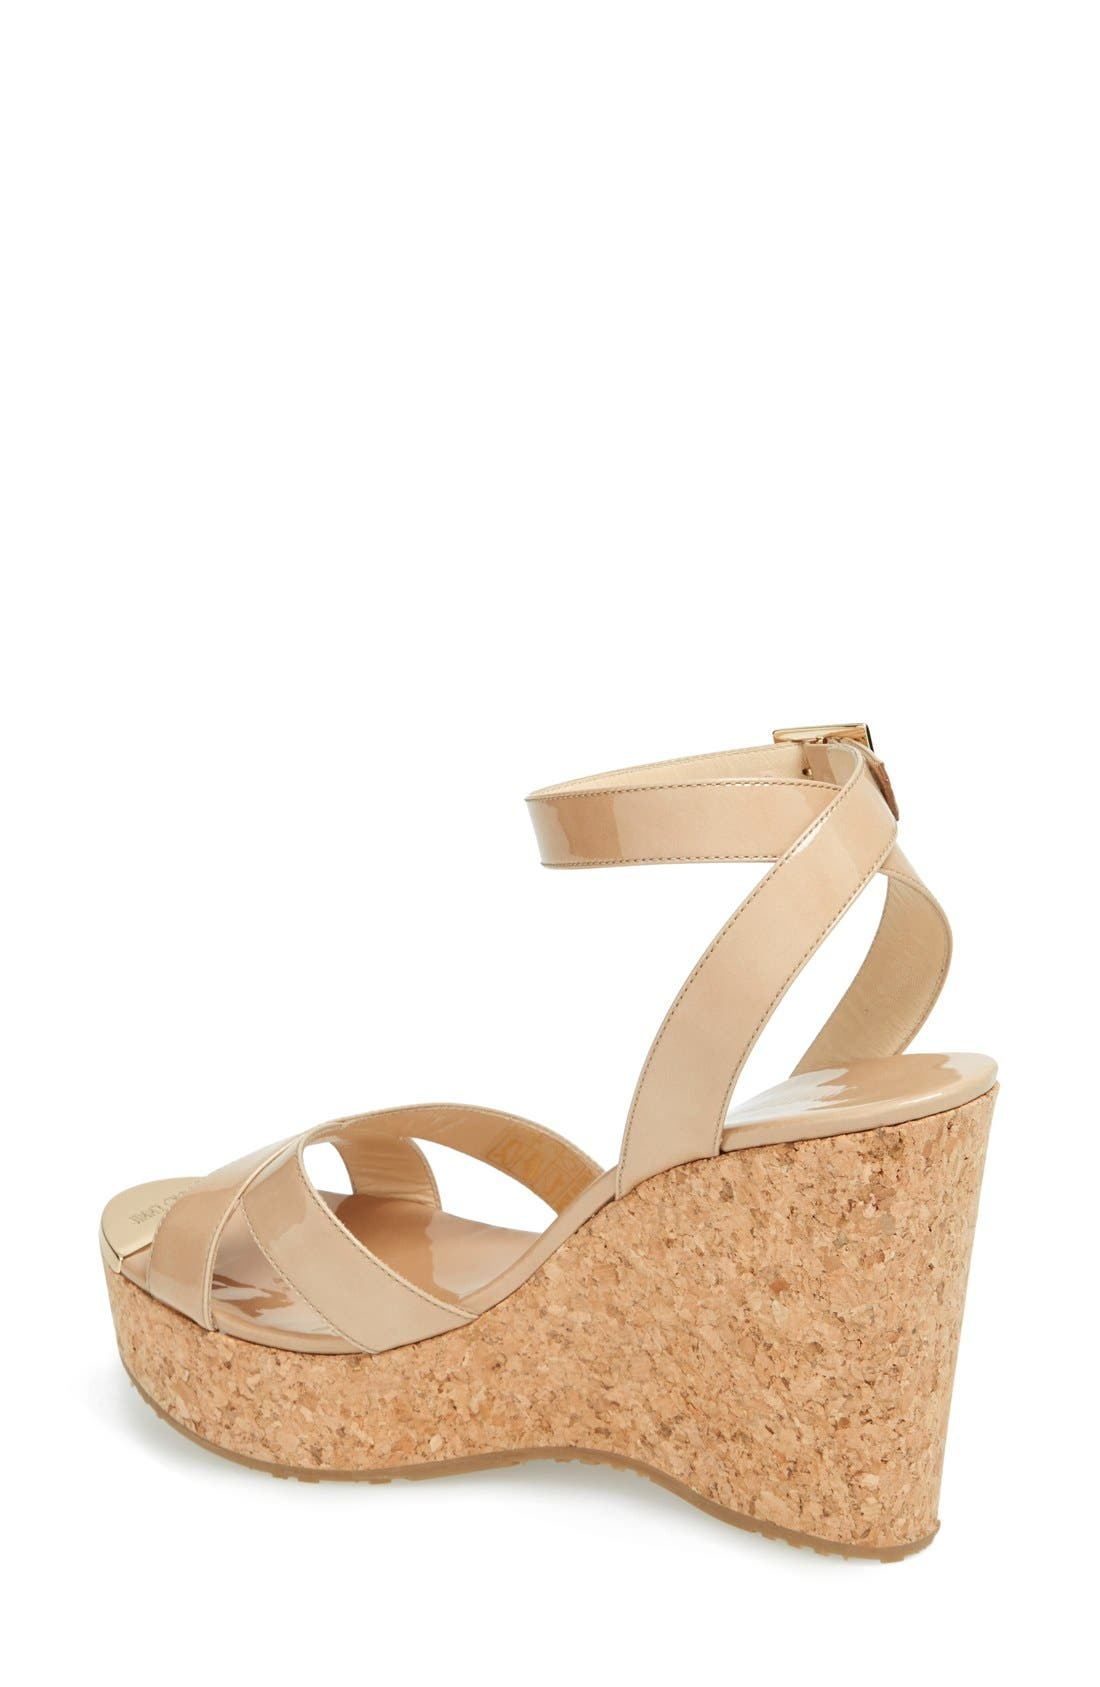 JIMMY CHOO,                             'Papyrus' Cork Wedge Sandal,                             Alternate thumbnail 4, color,                             250